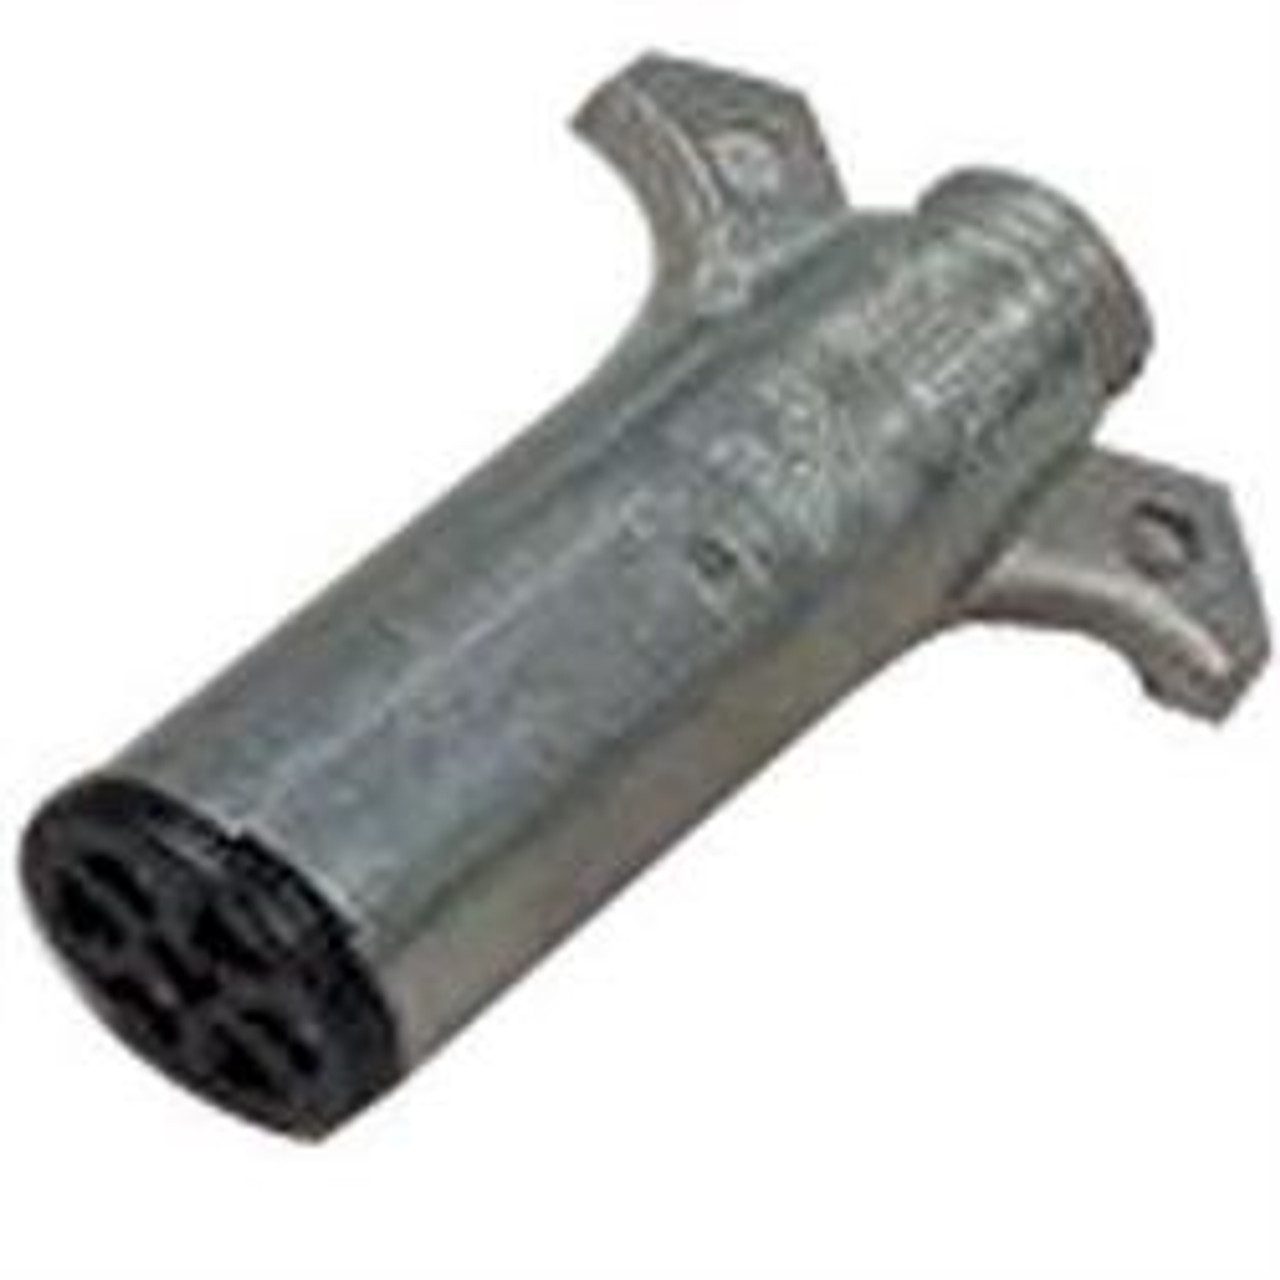 Connector Plug - 7 Way Round Metal (19-1048)